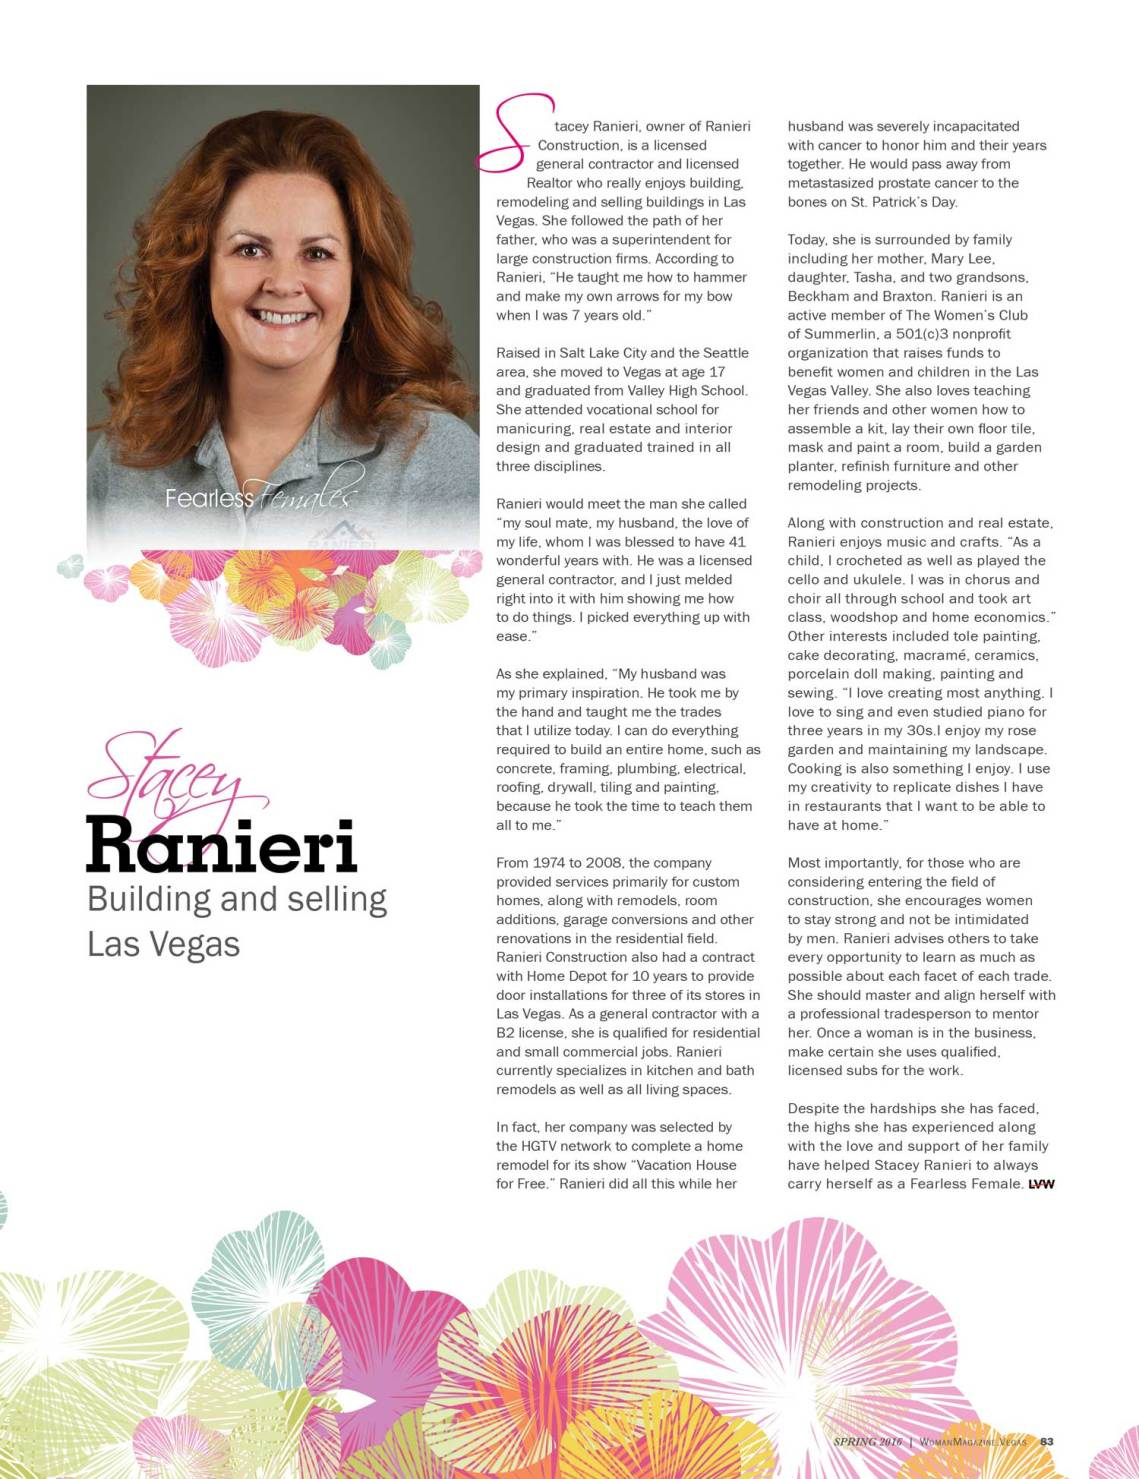 Stacey Ranieri - Fearless Female article - Las Vegas Woman Mazazine